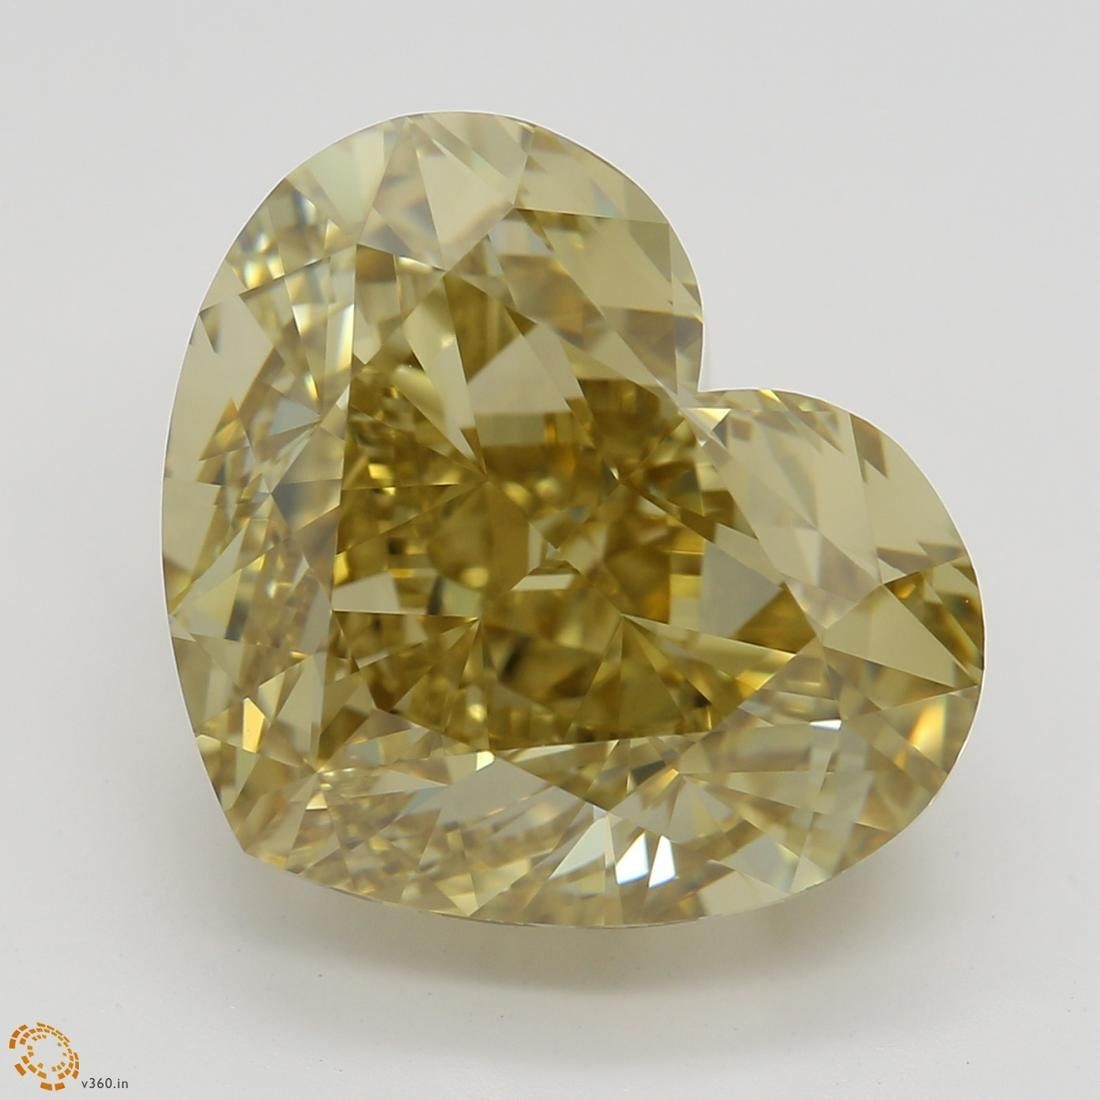 8.08 ct, Brown Yellow/VVS1, Heart cut Diamond